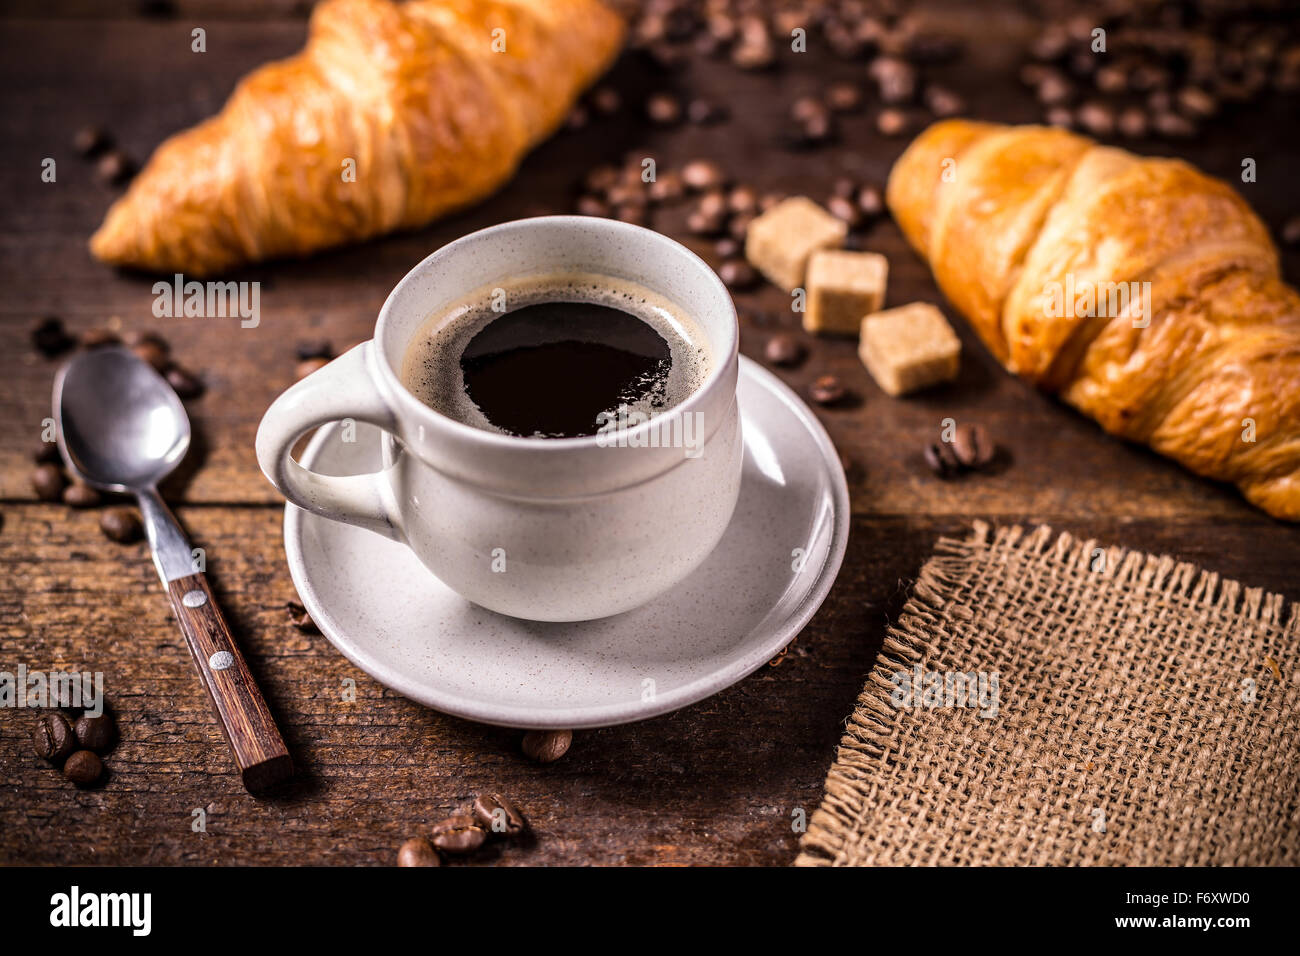 Coffee and croissant on wooden background - Stock Image